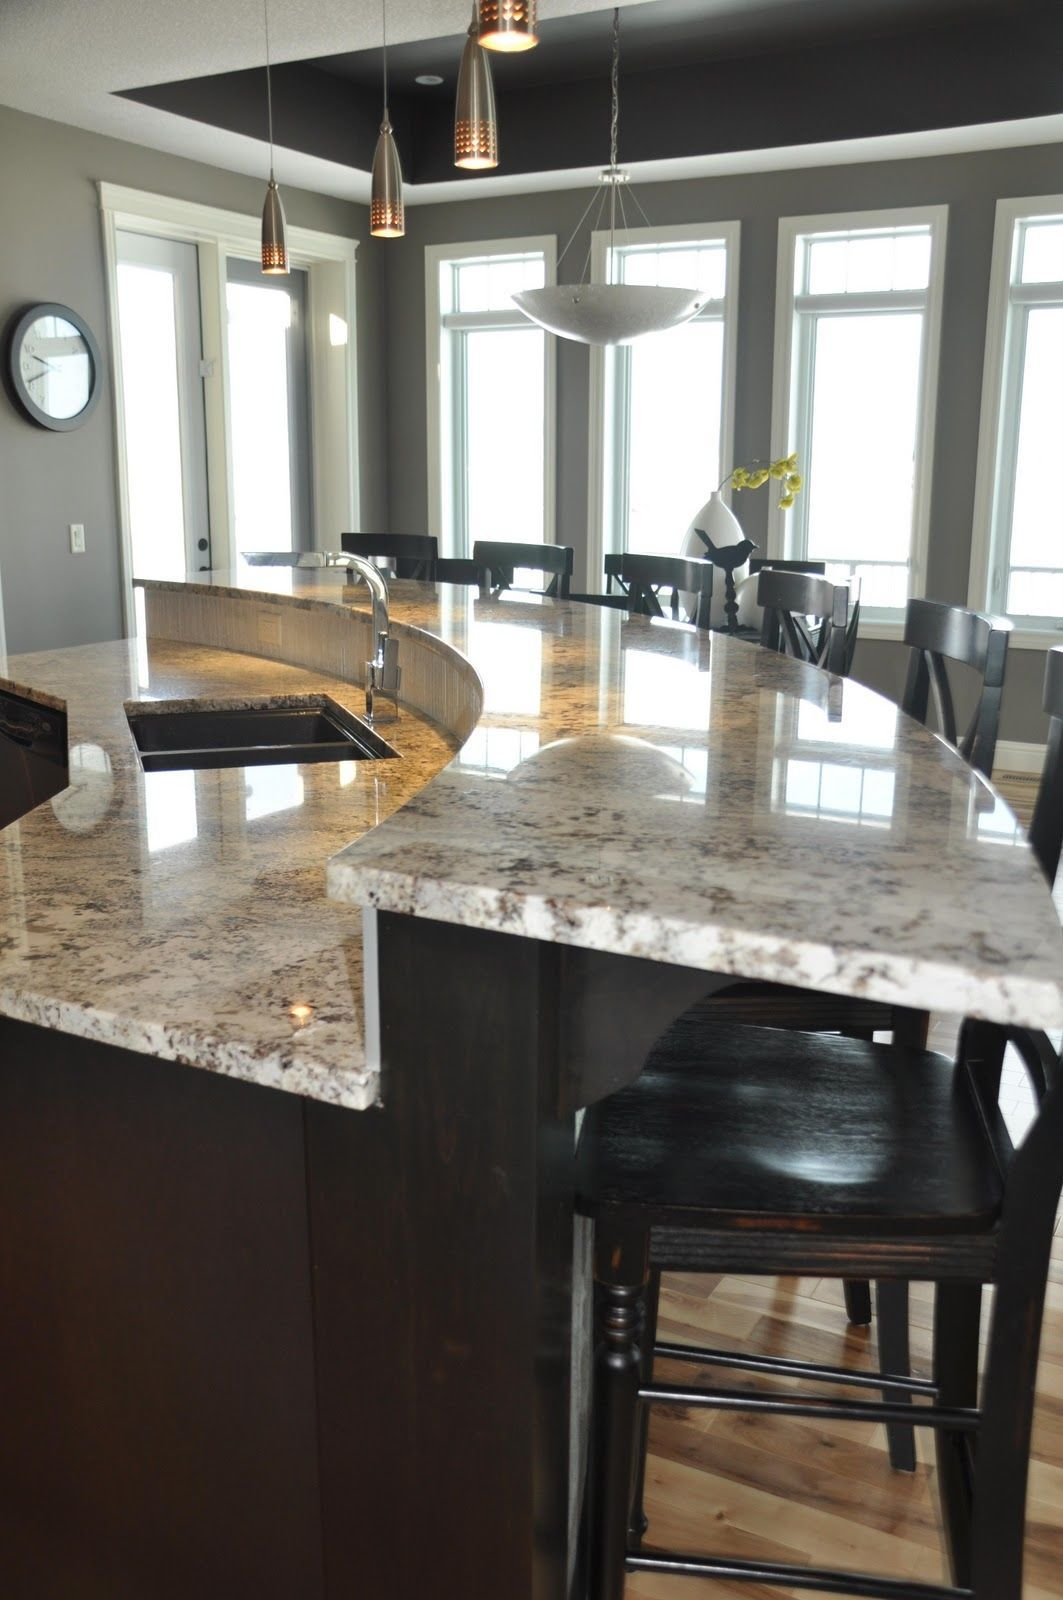 Curved Raised Eating Bar | Projects to Try | Pinterest